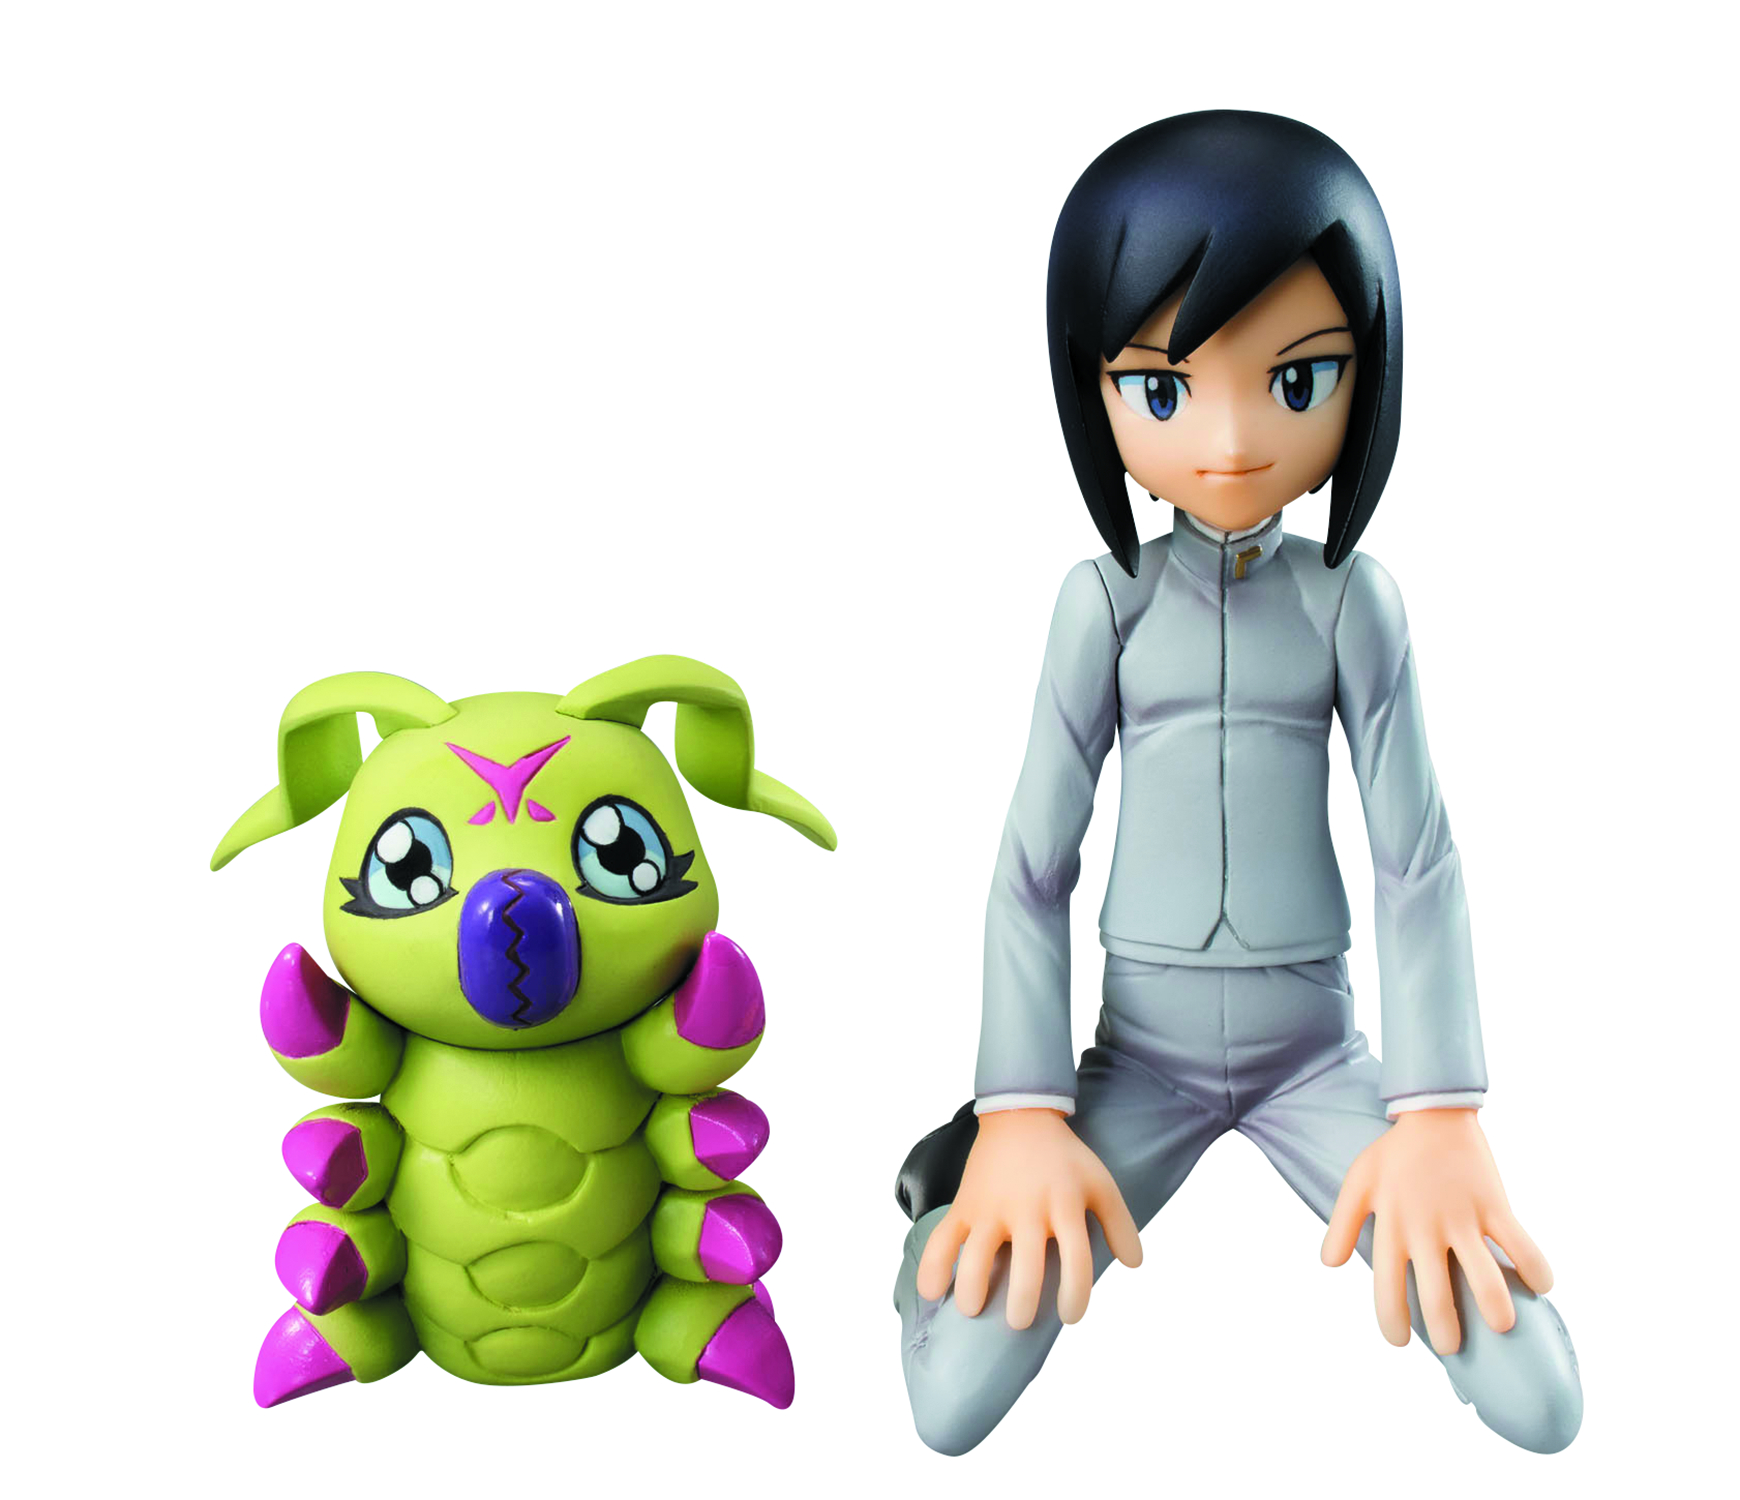 DIGIMON ADVENTURE 02 KEN & WARMMON GEM PVC FIG